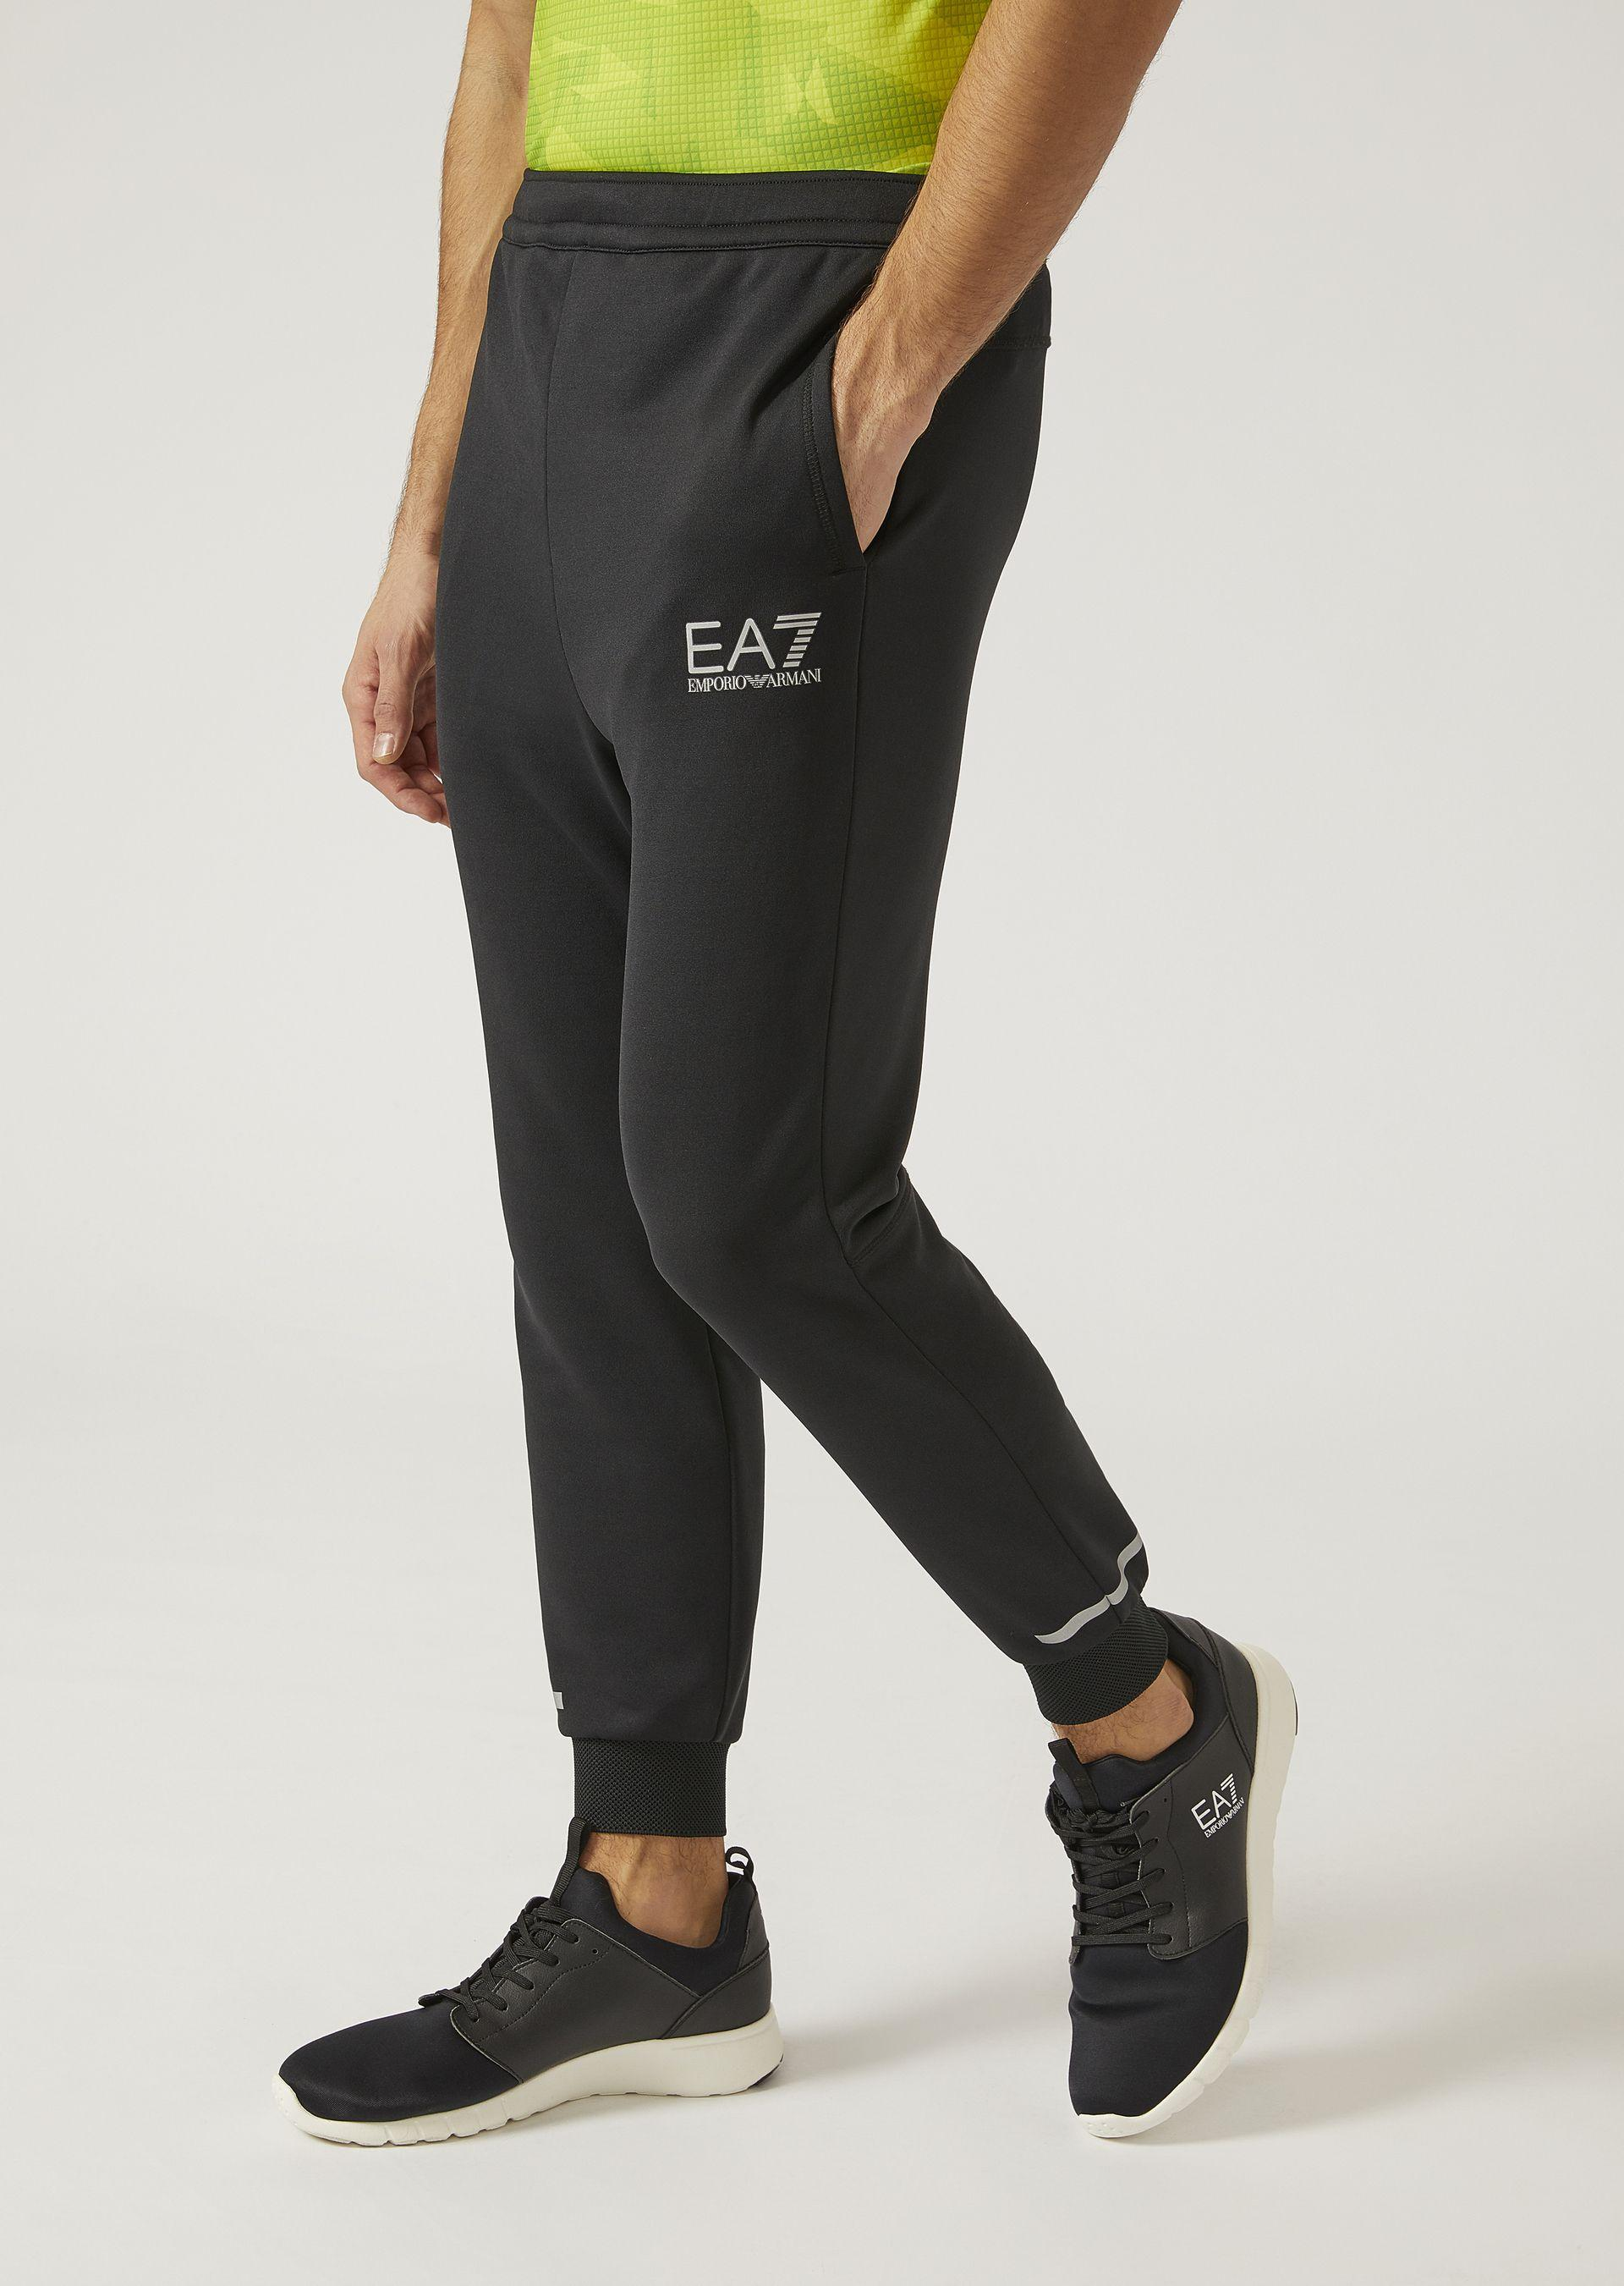 Emporio Armani Pants - Item 13172827 In Black ; Green